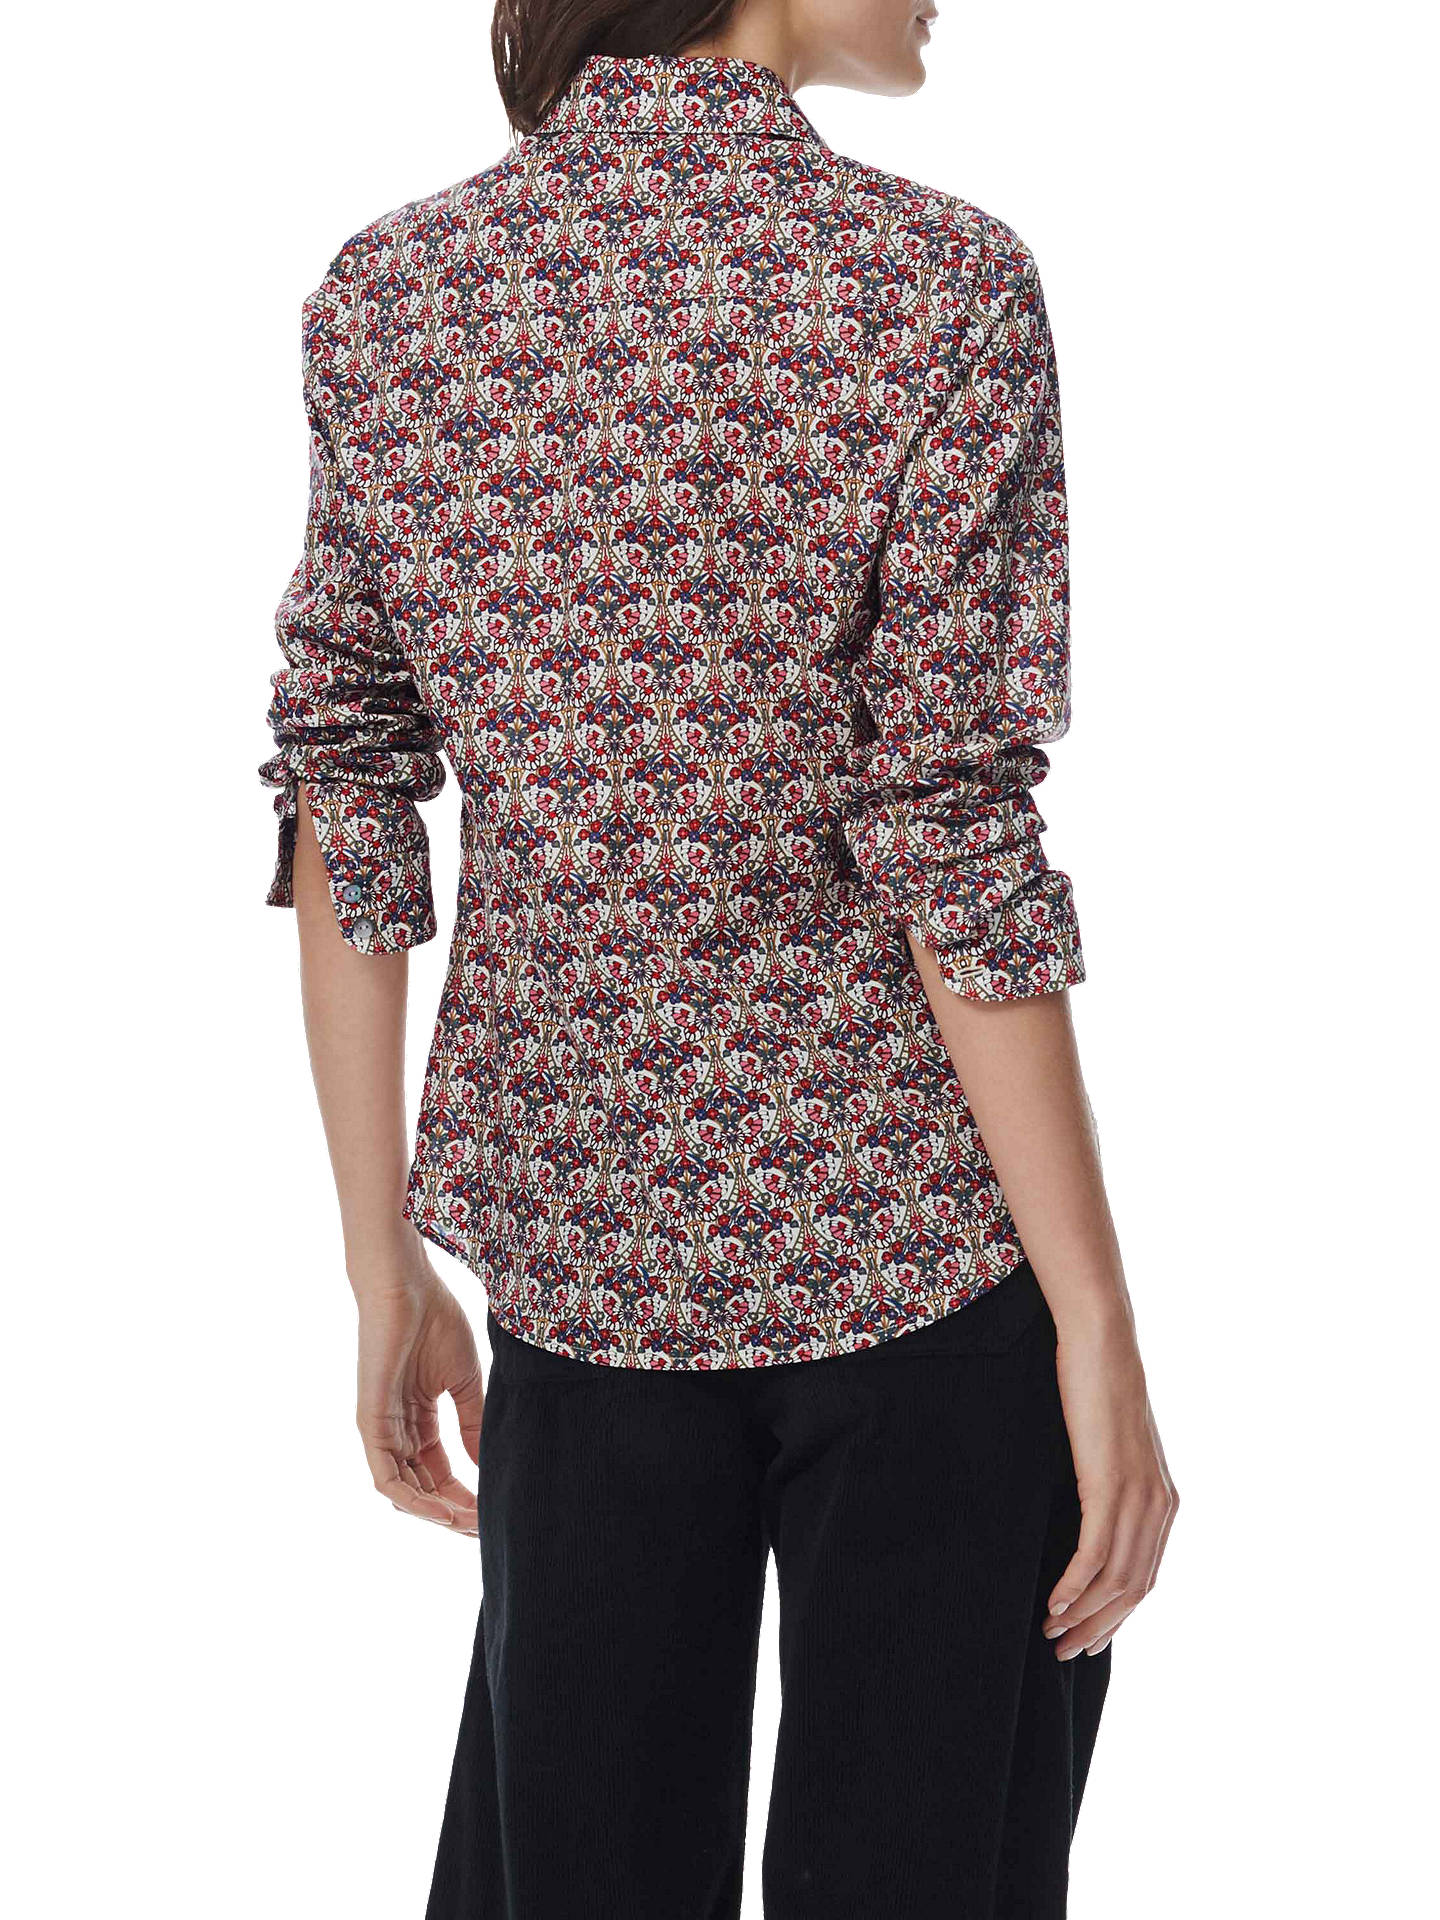 BuyBrora Cotton Liberty Lawn Shirt, Fig Butterfly, 6 Online at johnlewis.com